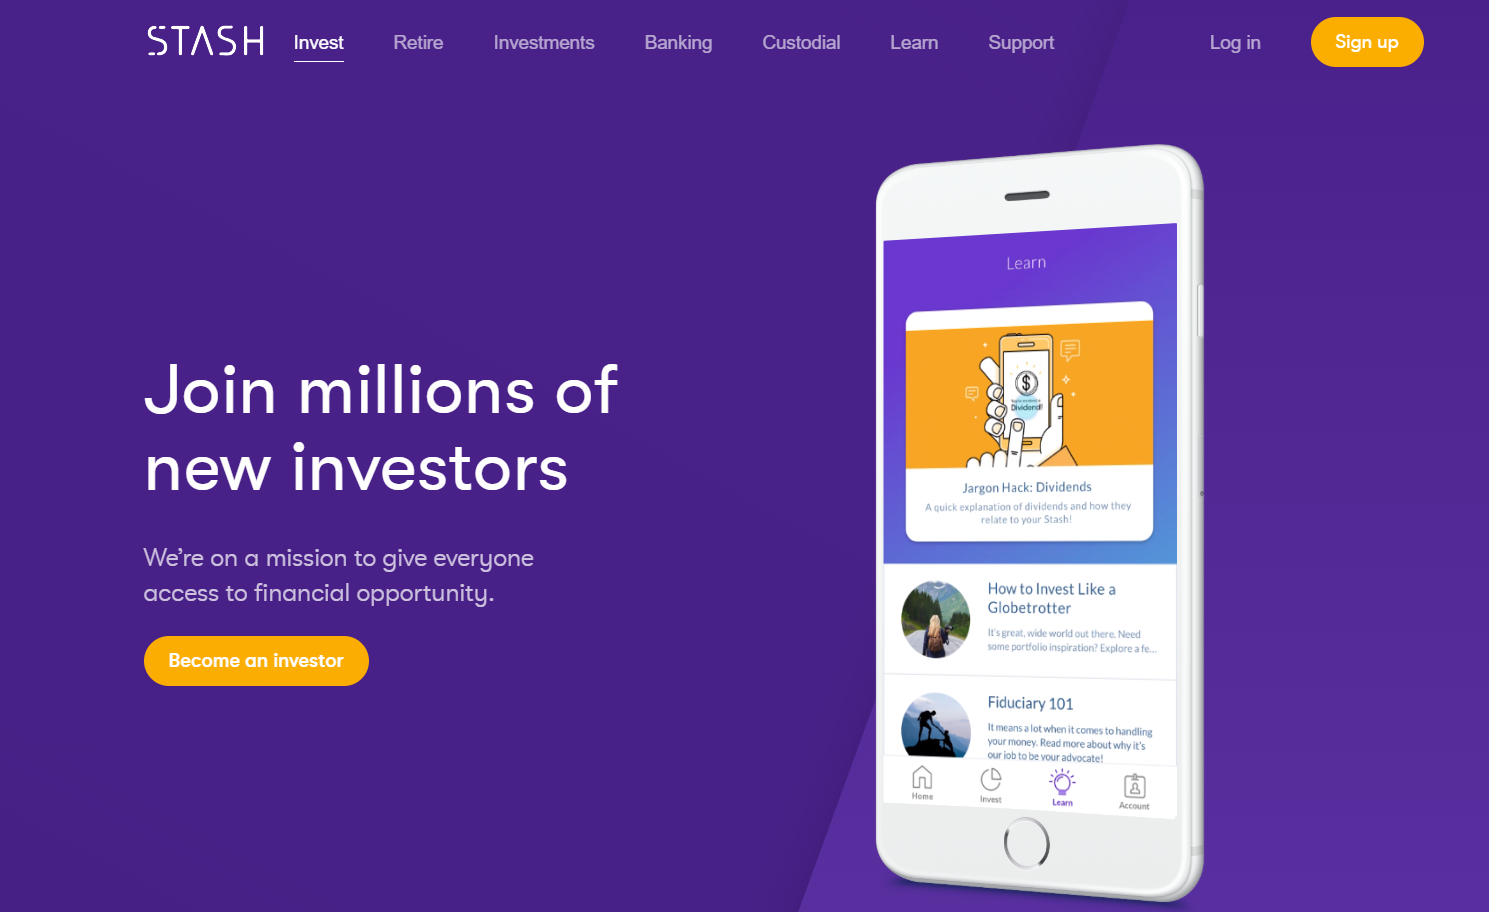 Stash invest homepage